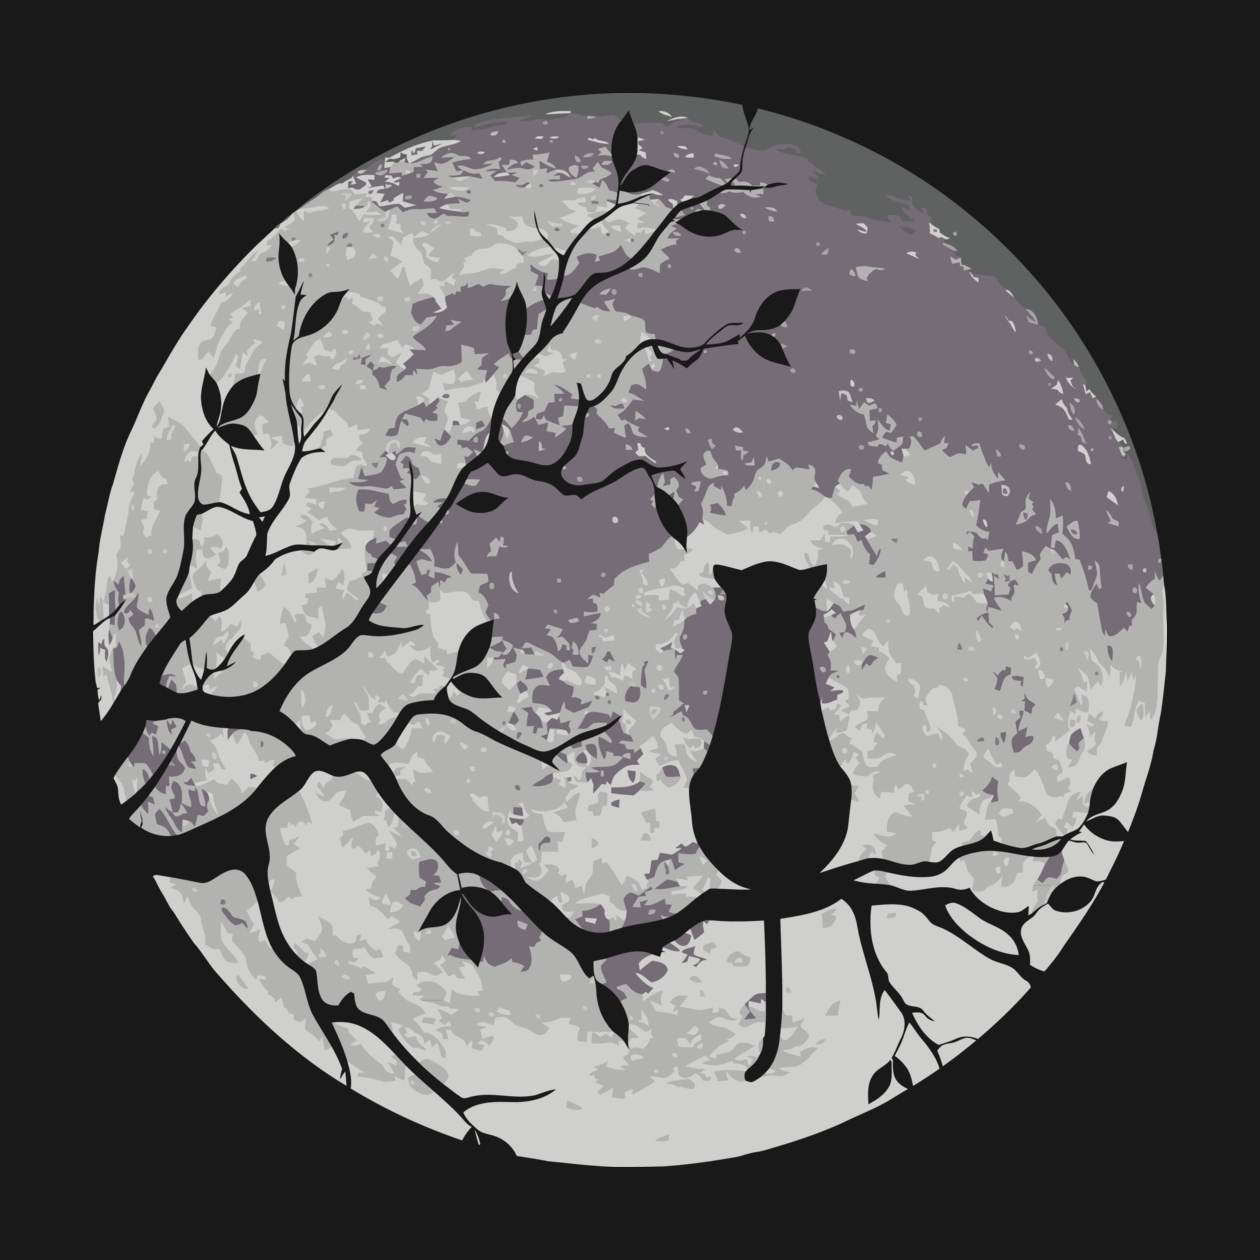 Check out this awesome 'The+Cat+And+The+Moon' design on TeePublic! http://bit.ly/1vBluov